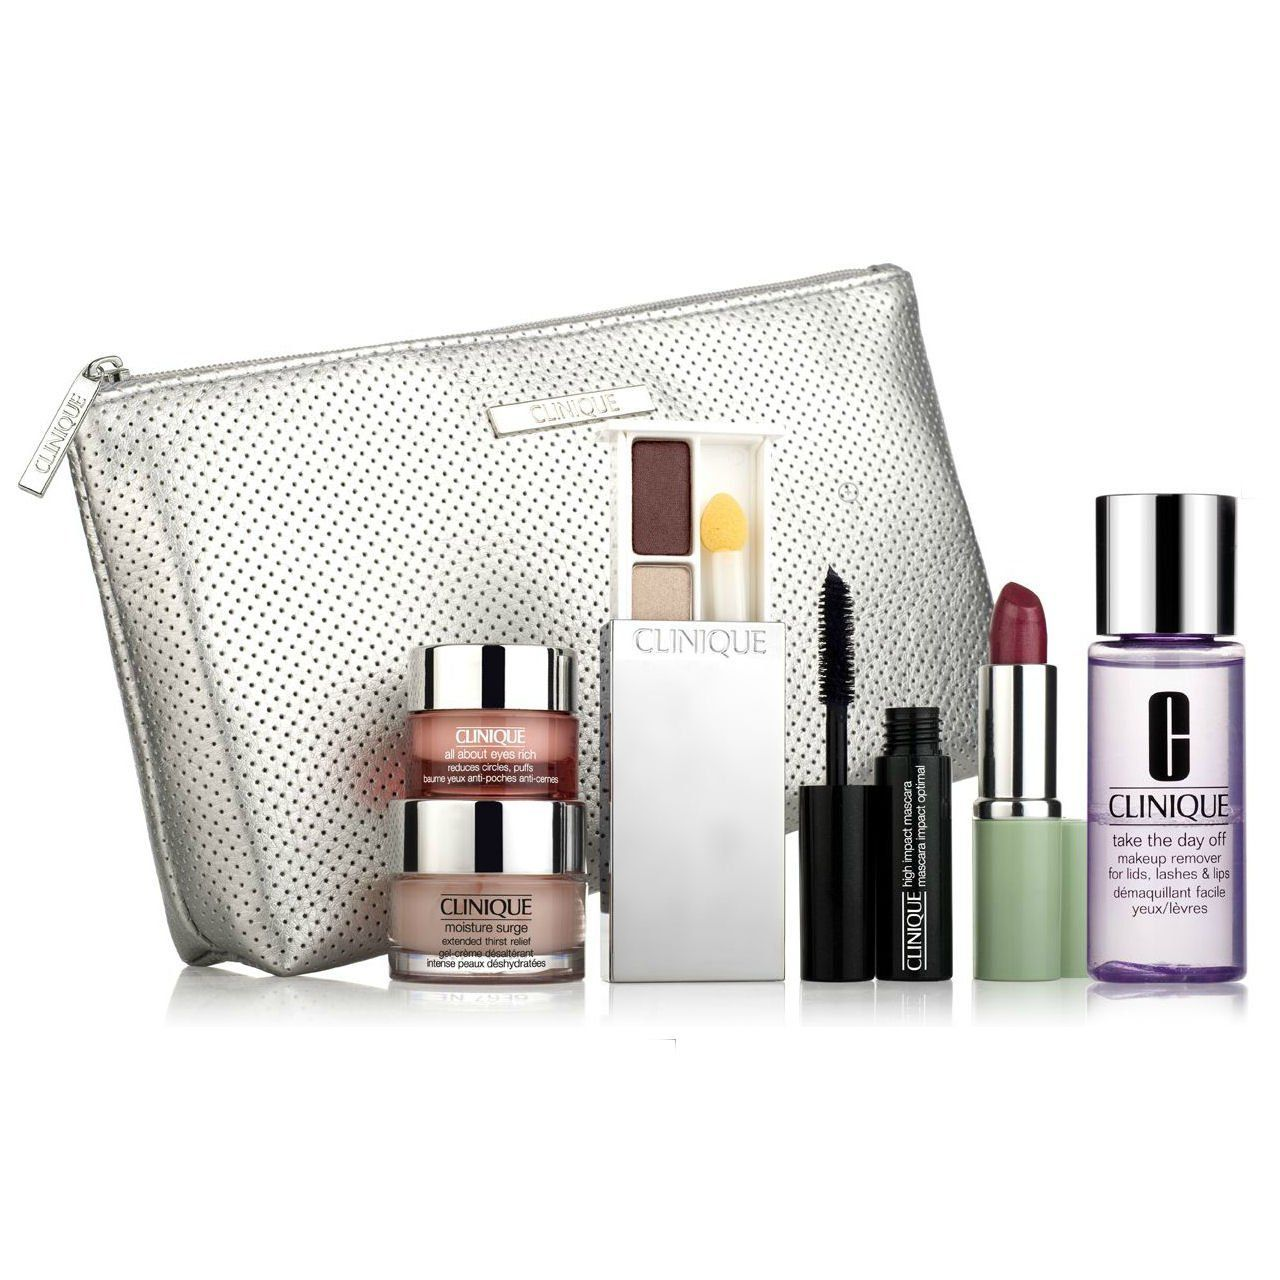 Clinique 2013 Deluxe Gift Set includes All About Eye Rich